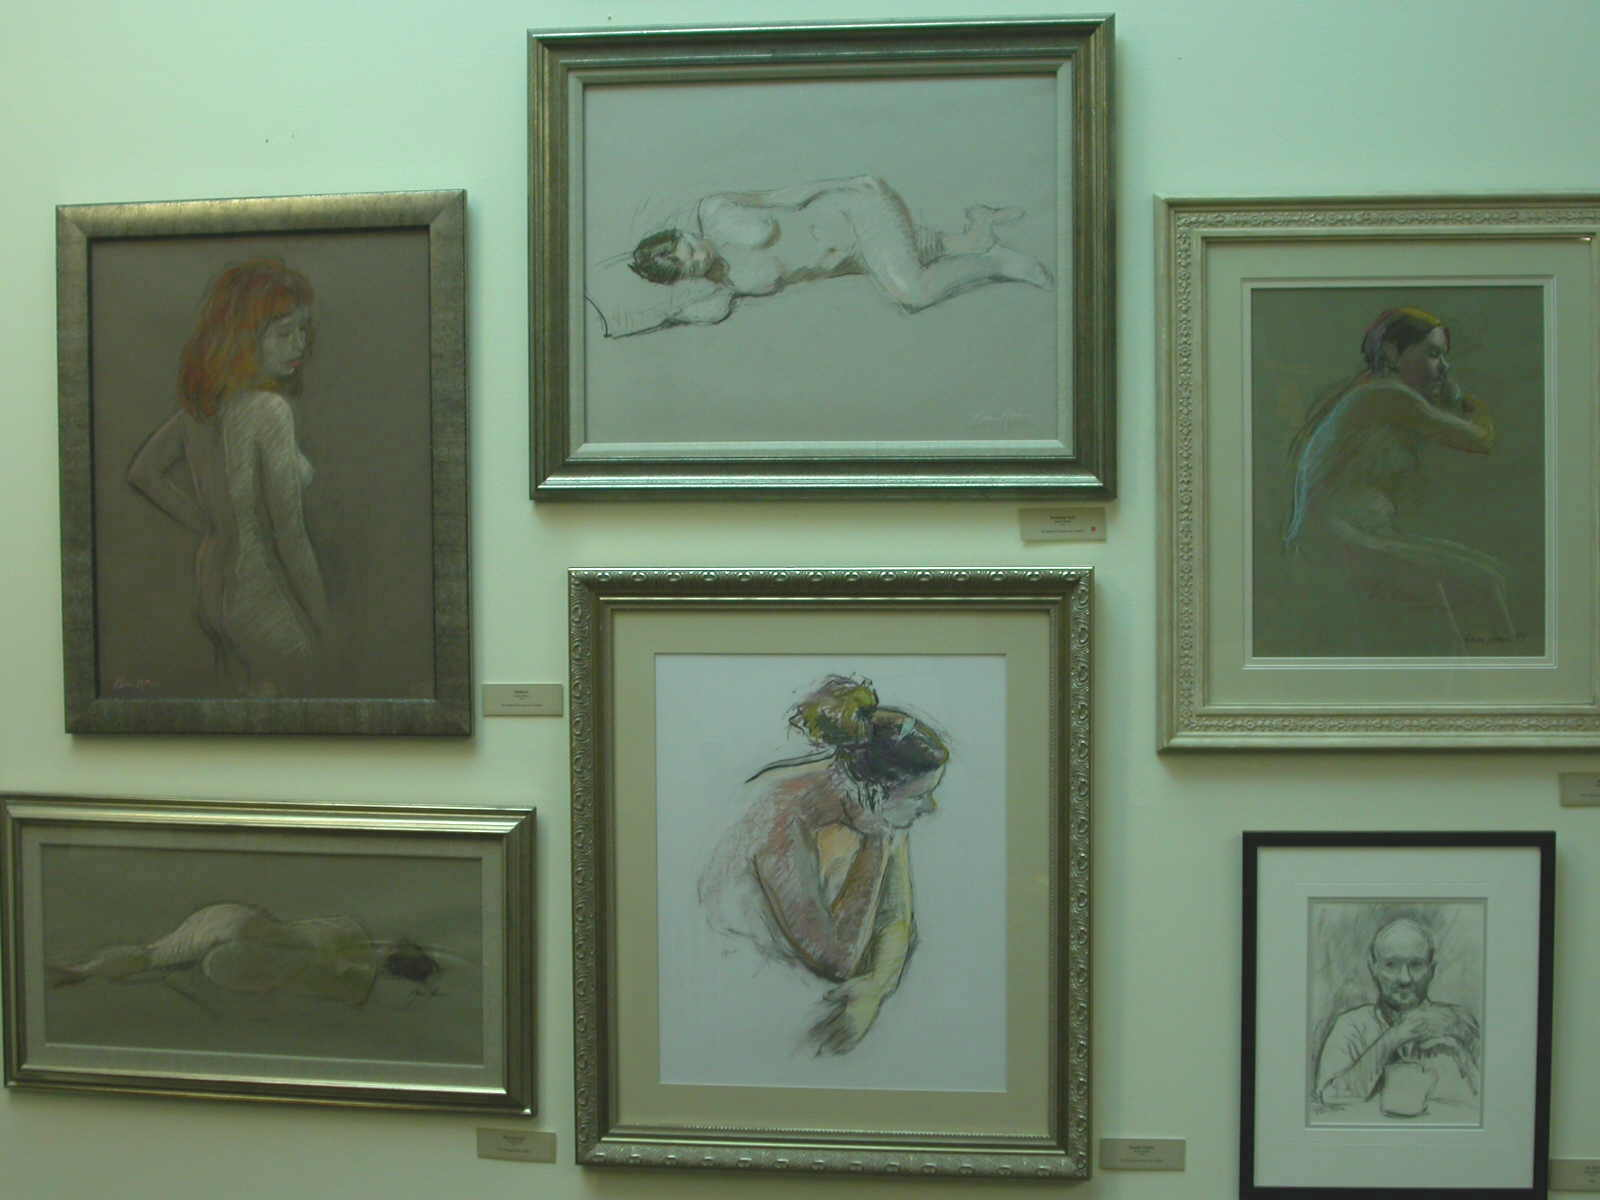 Karen Horne - Wall of figure drawings